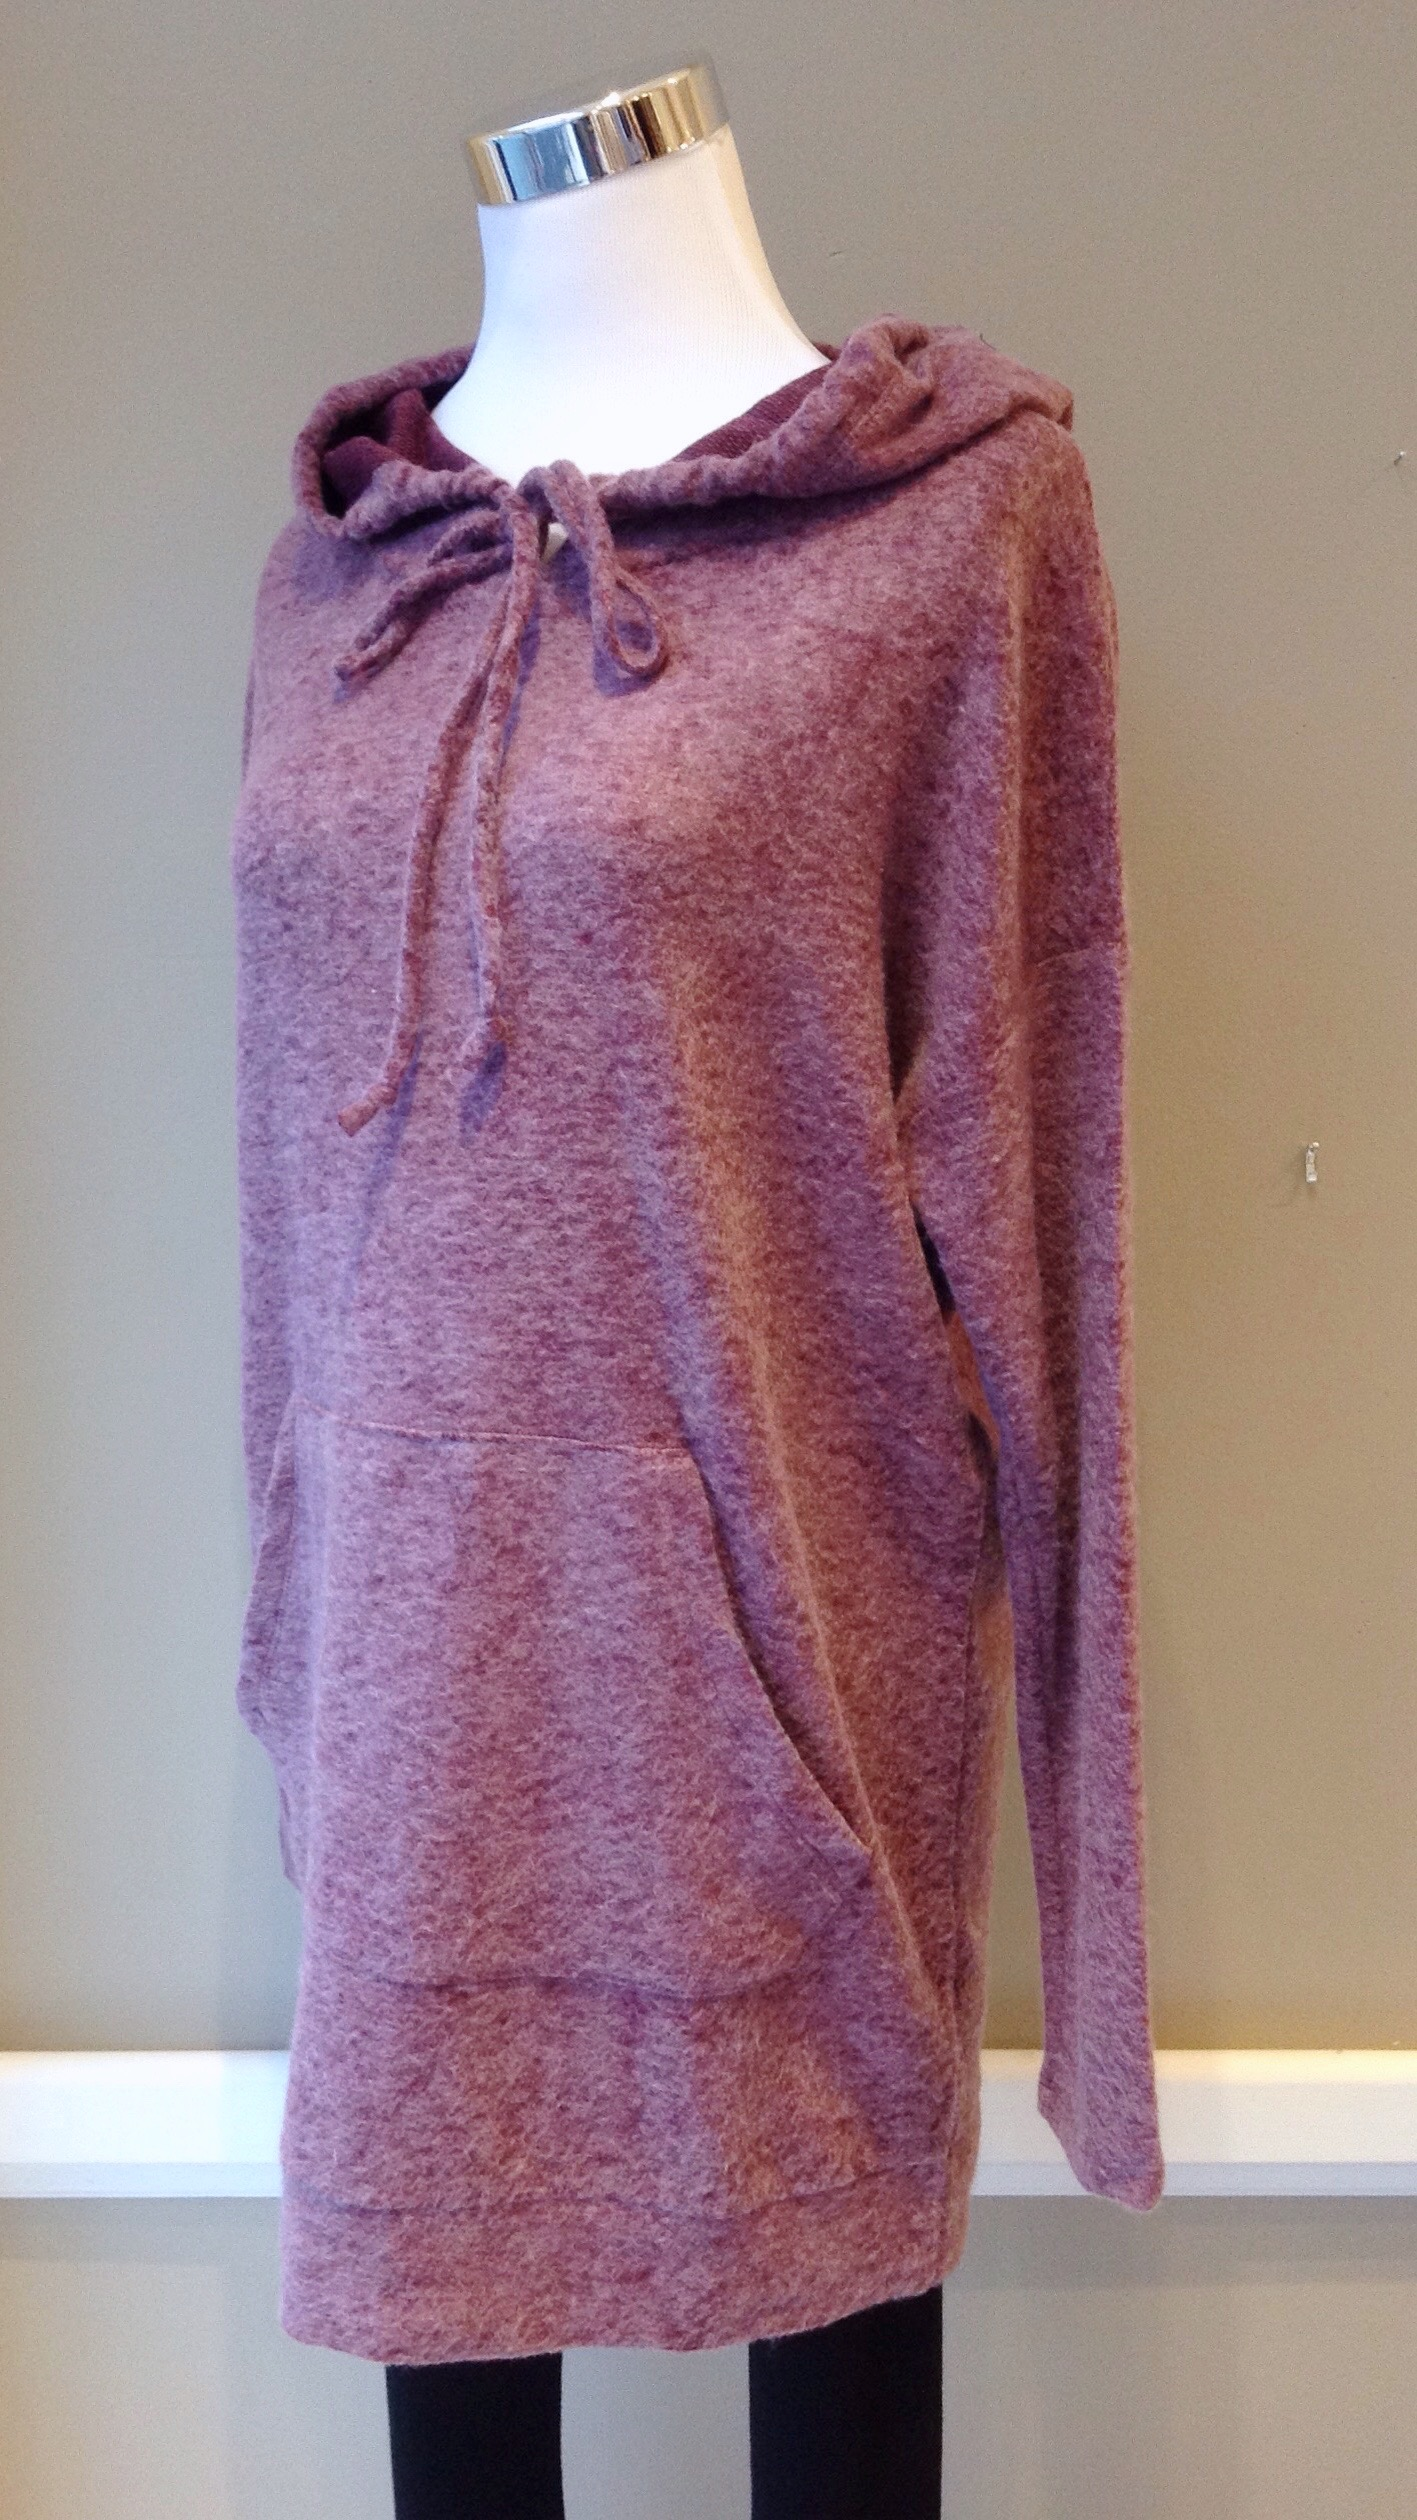 Cherish fleecy knit hoodie with front pocket in burgundy, $38. Also available in light grey.